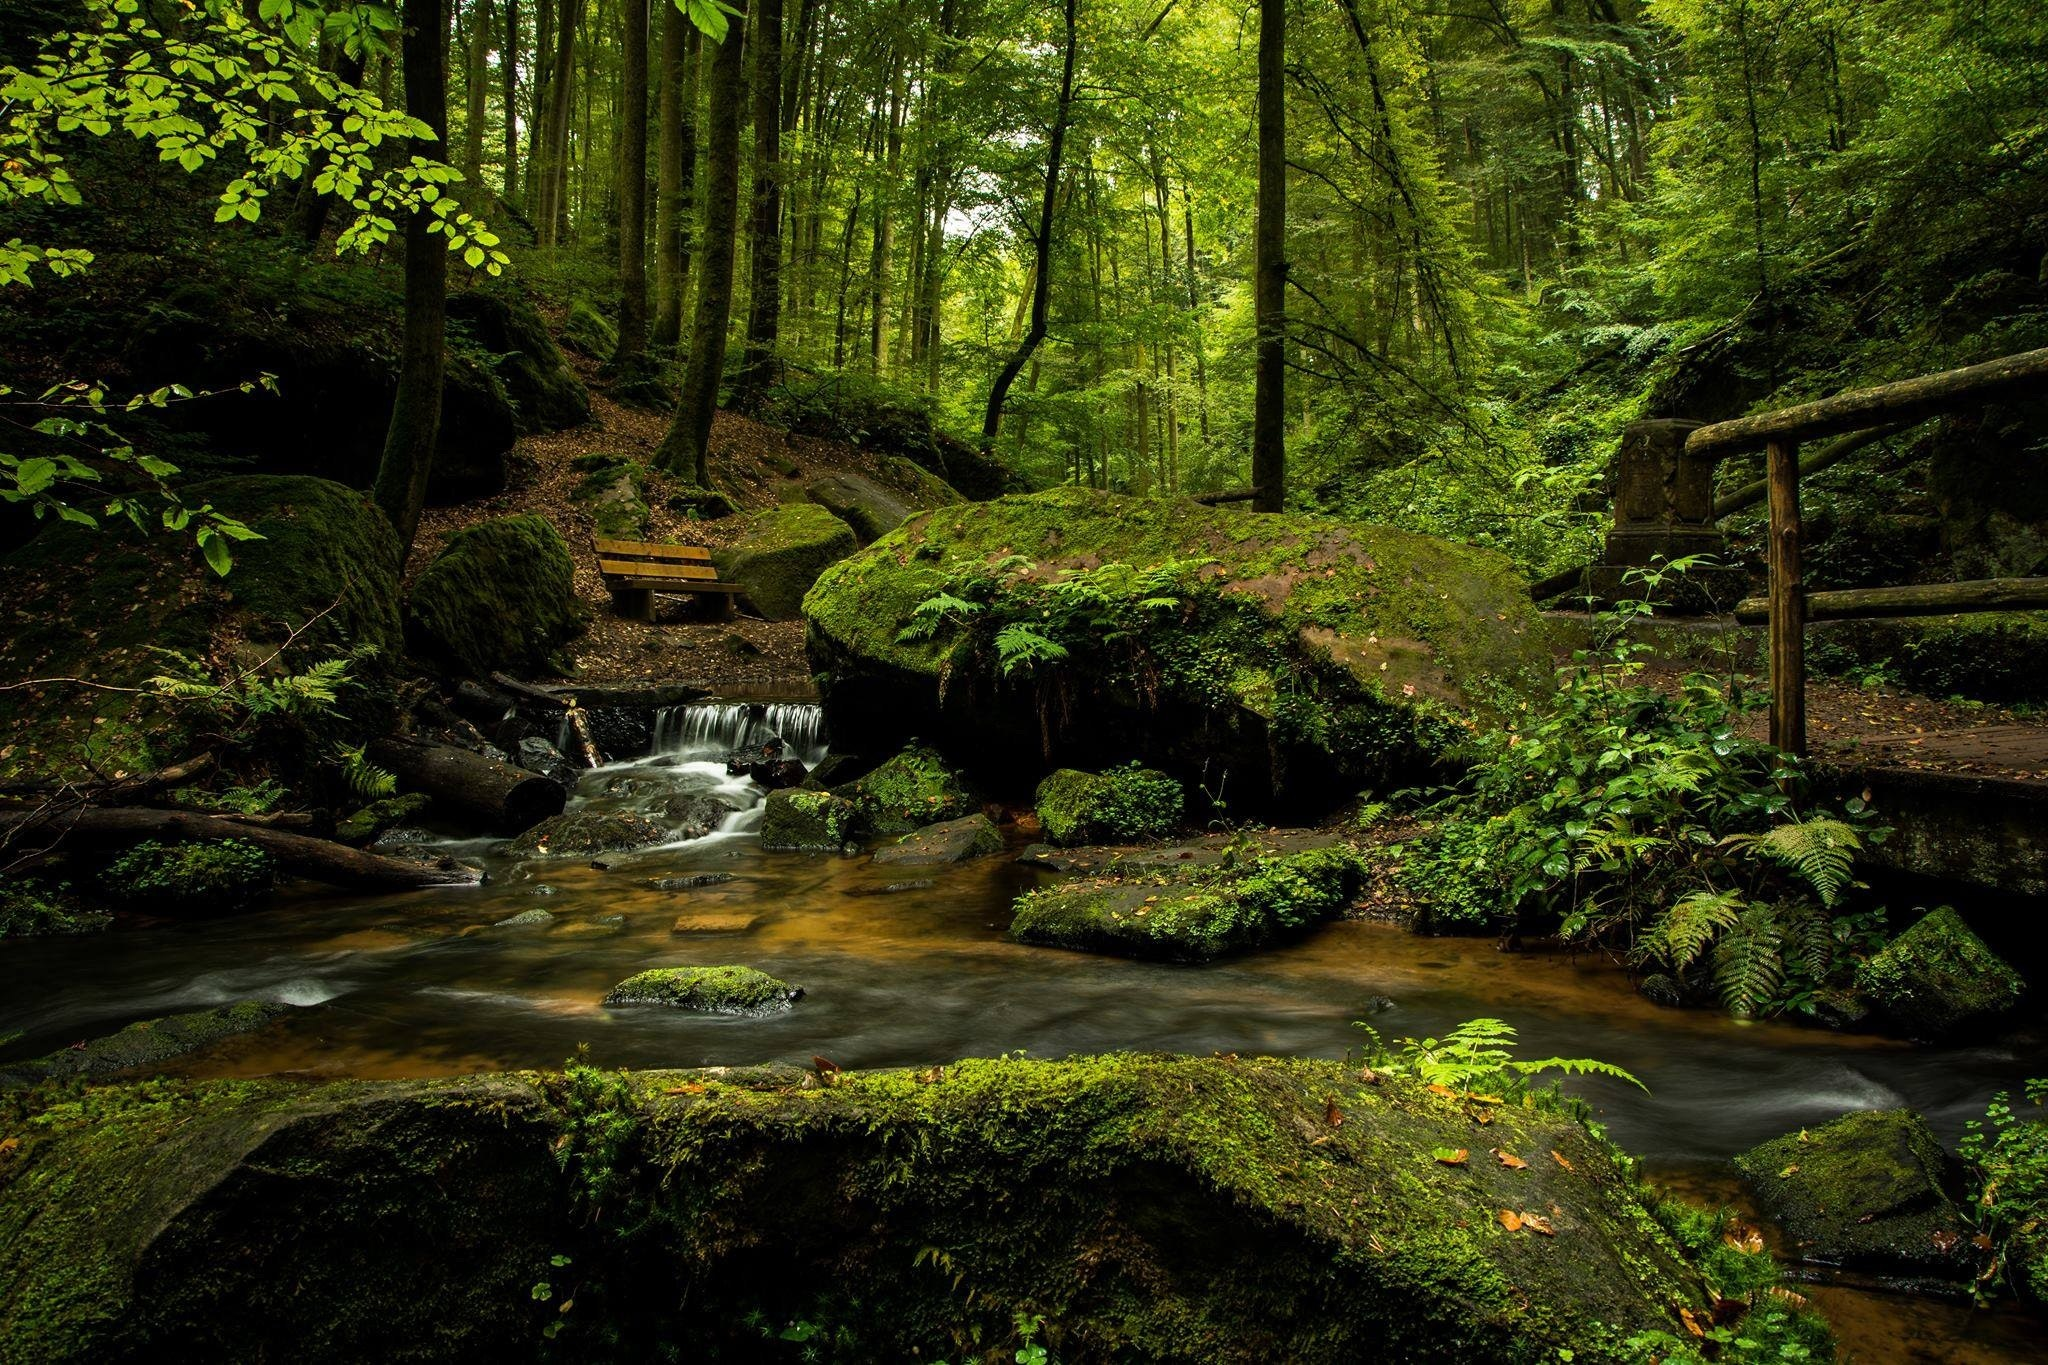 forest, green, woods